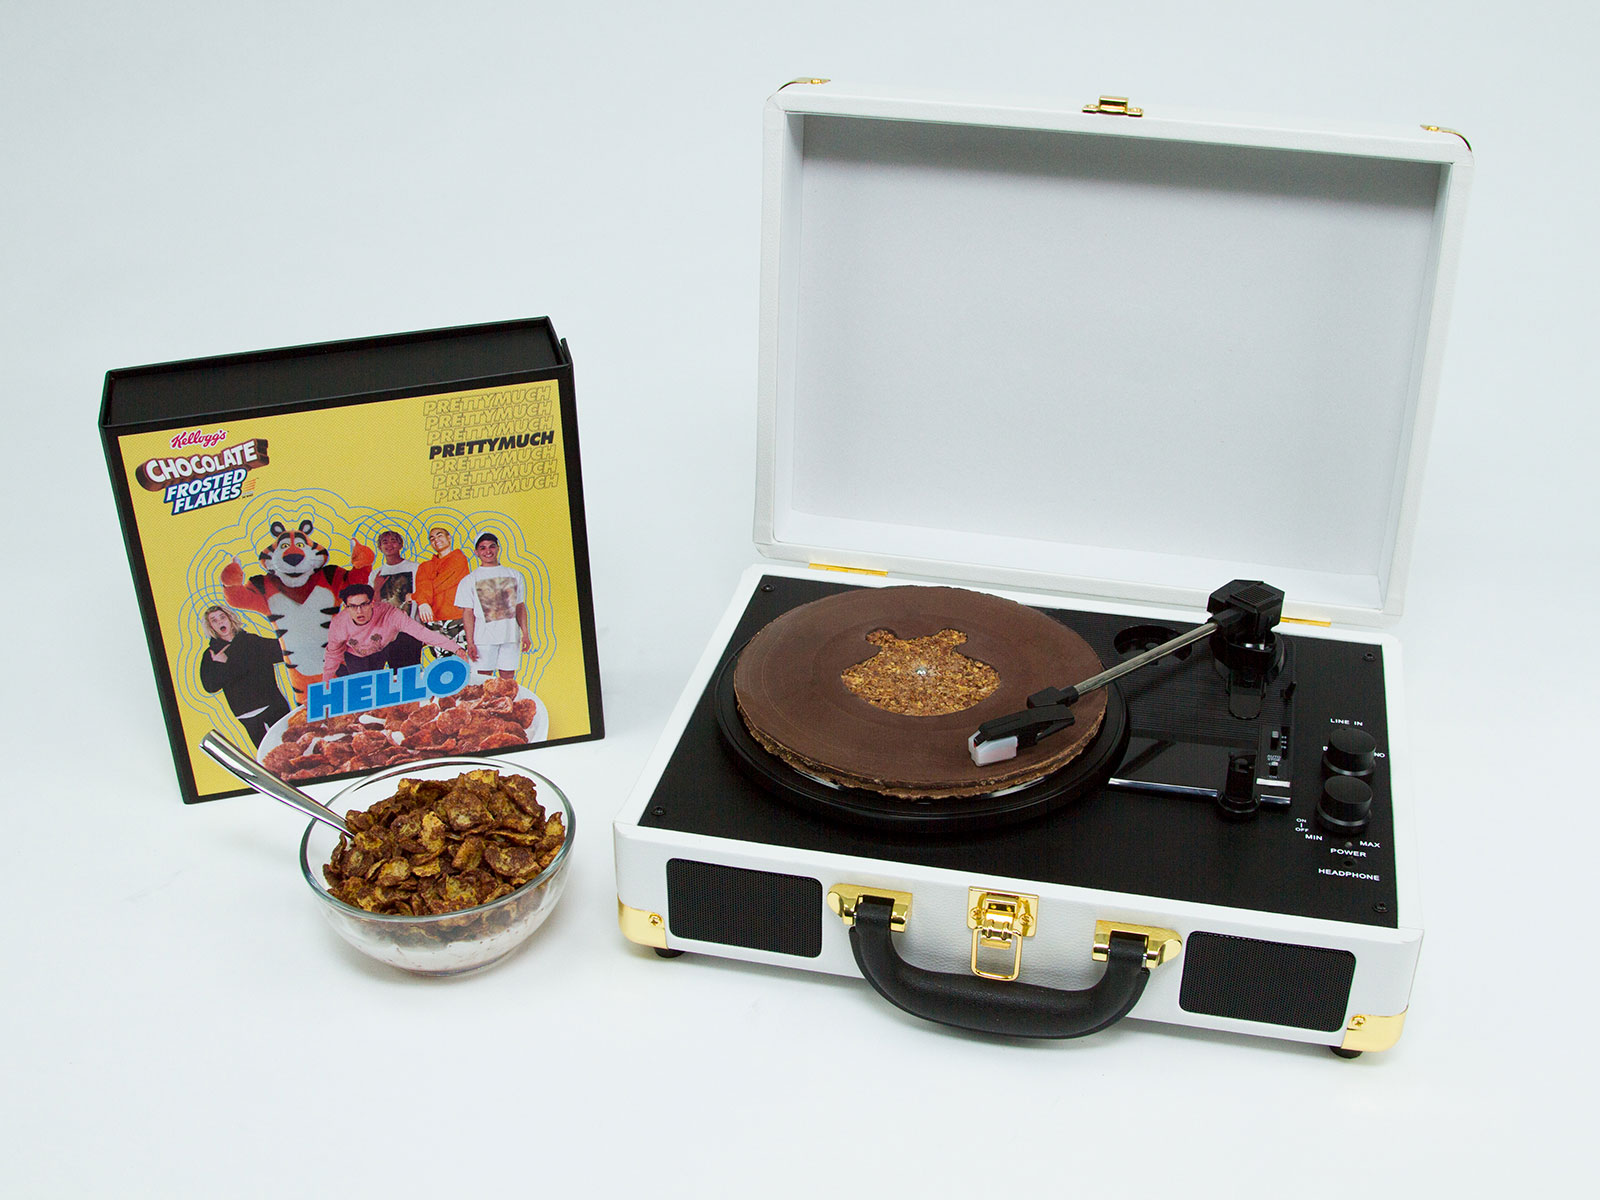 Chocolate Frosted Flakes Record Player